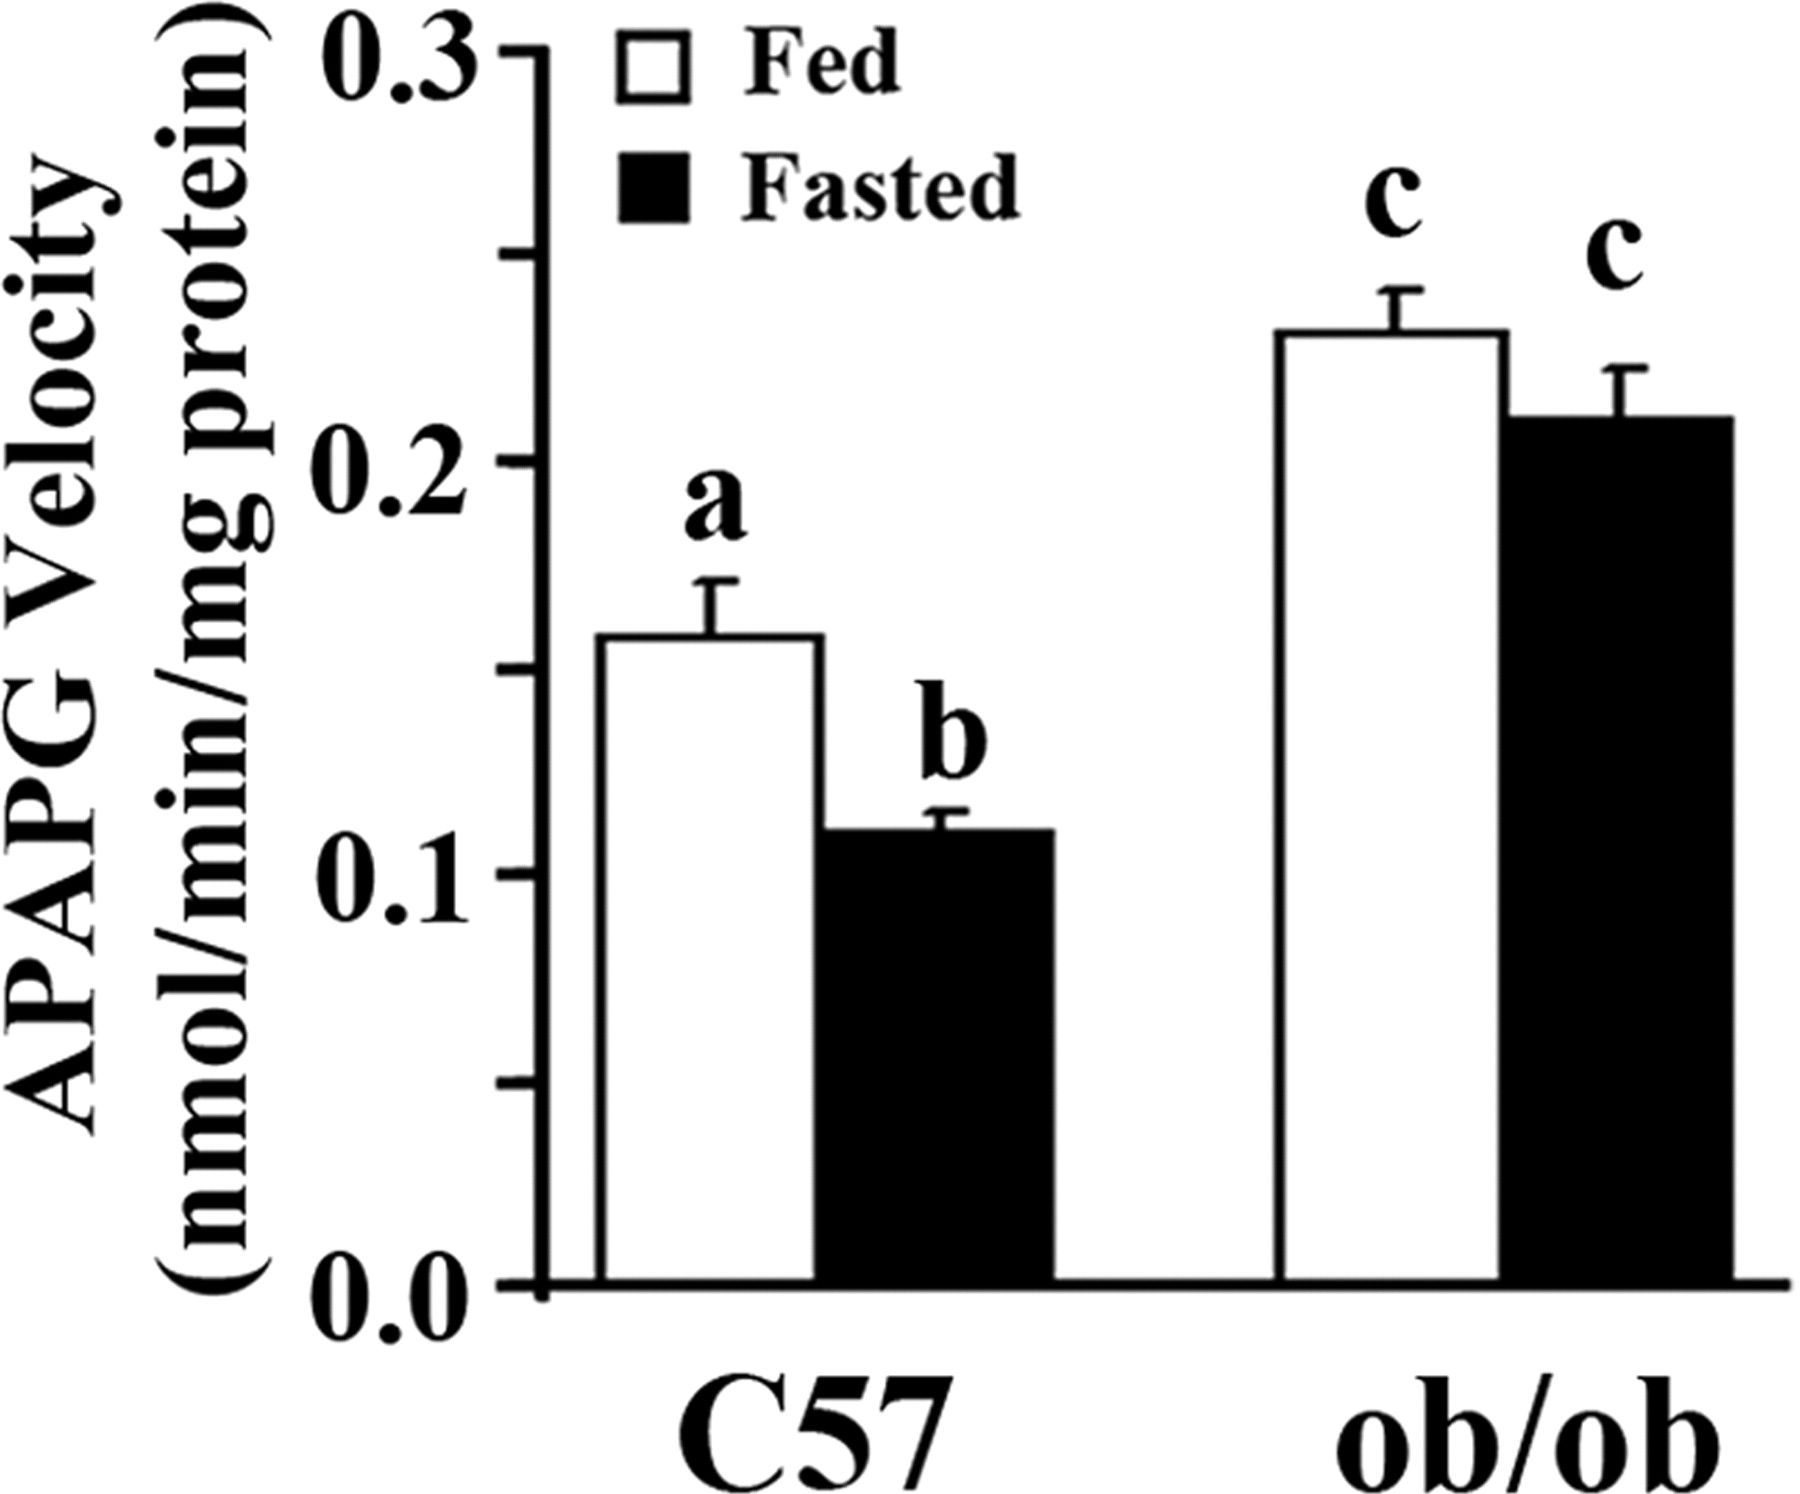 Udp Glucuronosyltransferase Expression In Mouse Liver Is Increased In Obesity And Fasting